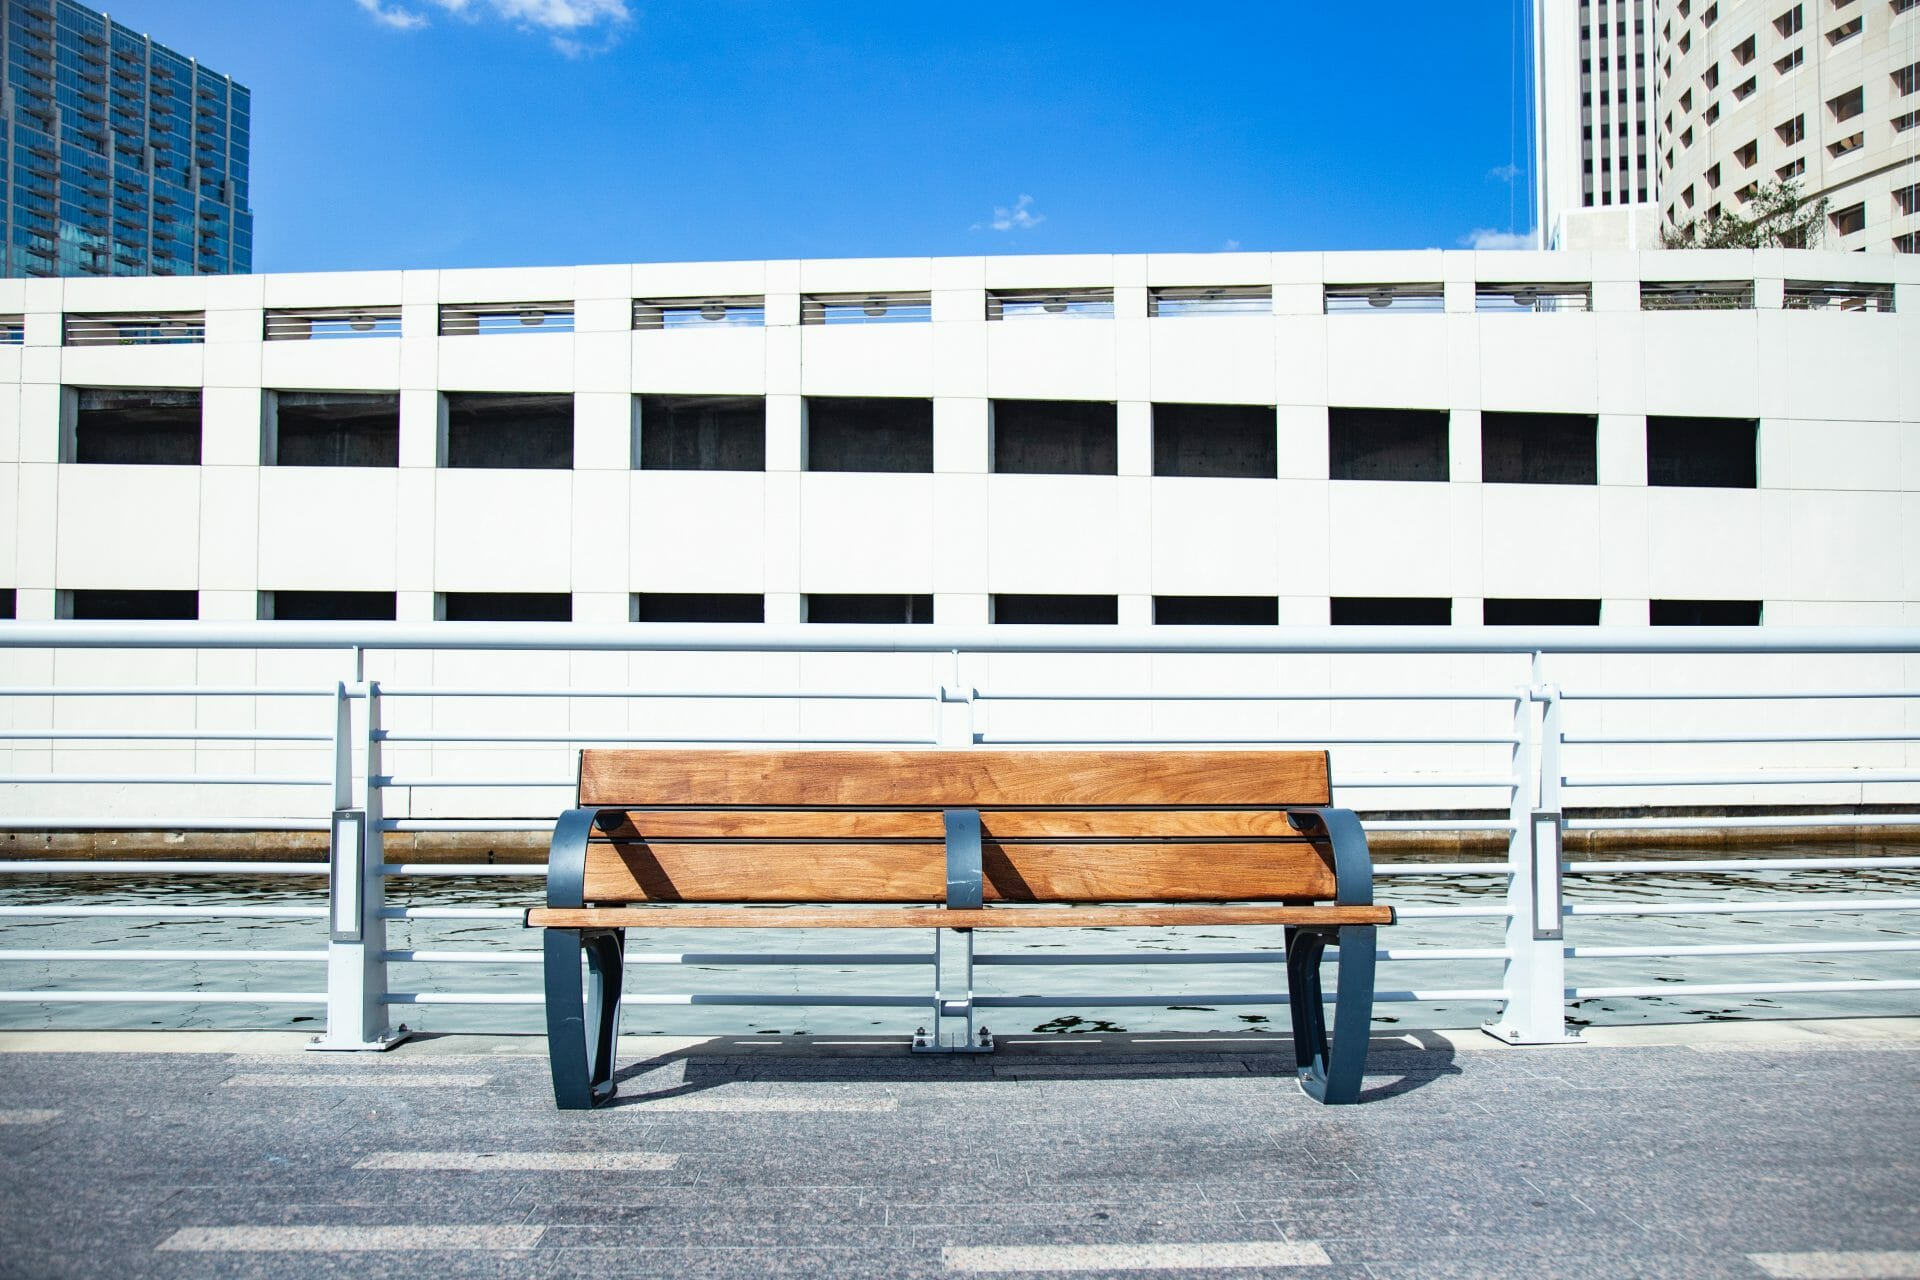 Picture of a Bench In Tampa for Real Estate News for Investors Podcast Episode #635